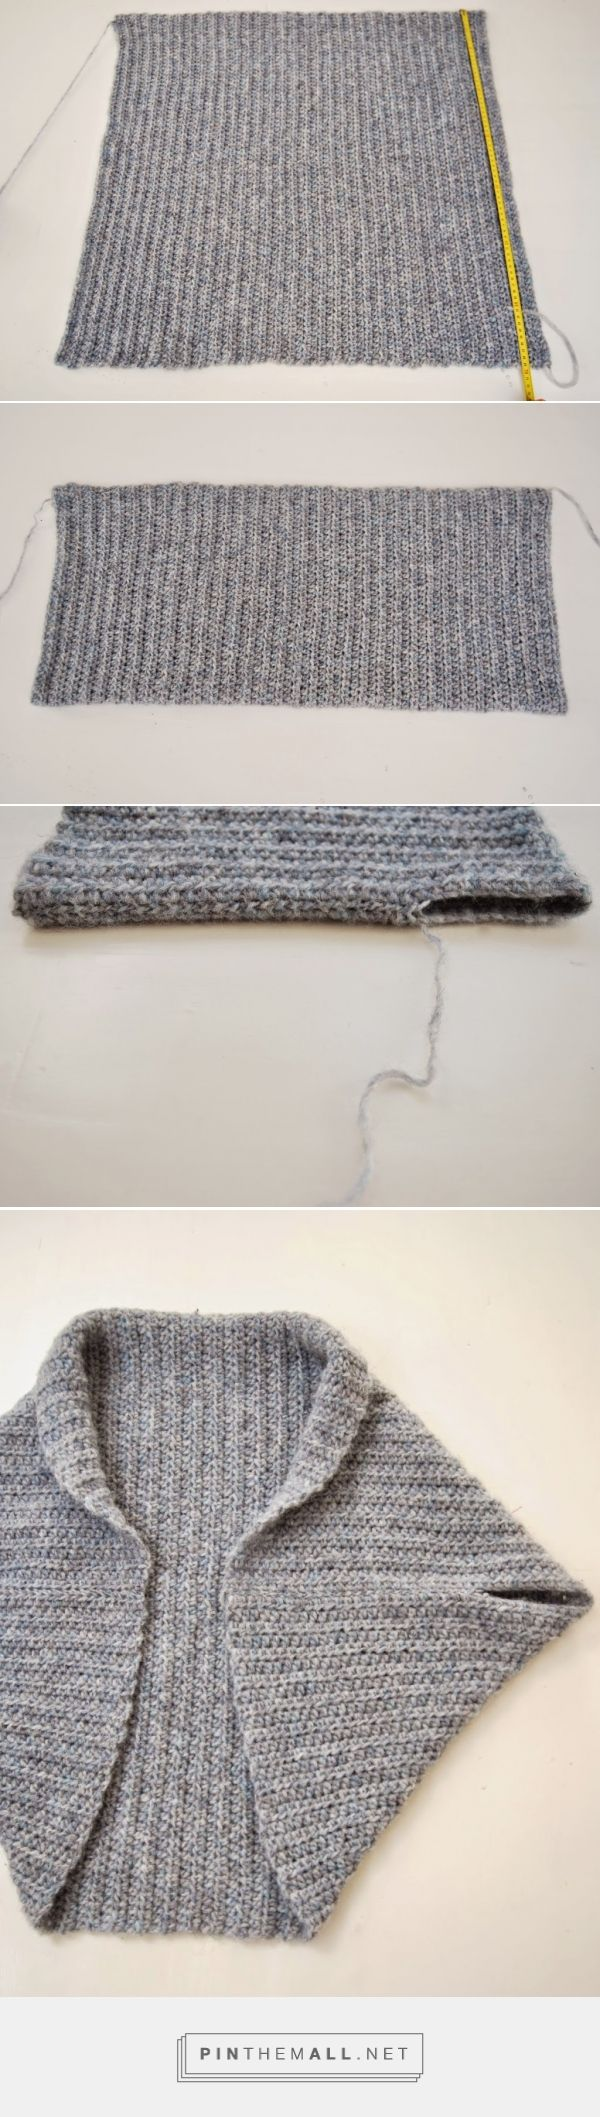 How to fold and sew a basic knit rectangle into a shrug ~ The Shrug Blog …